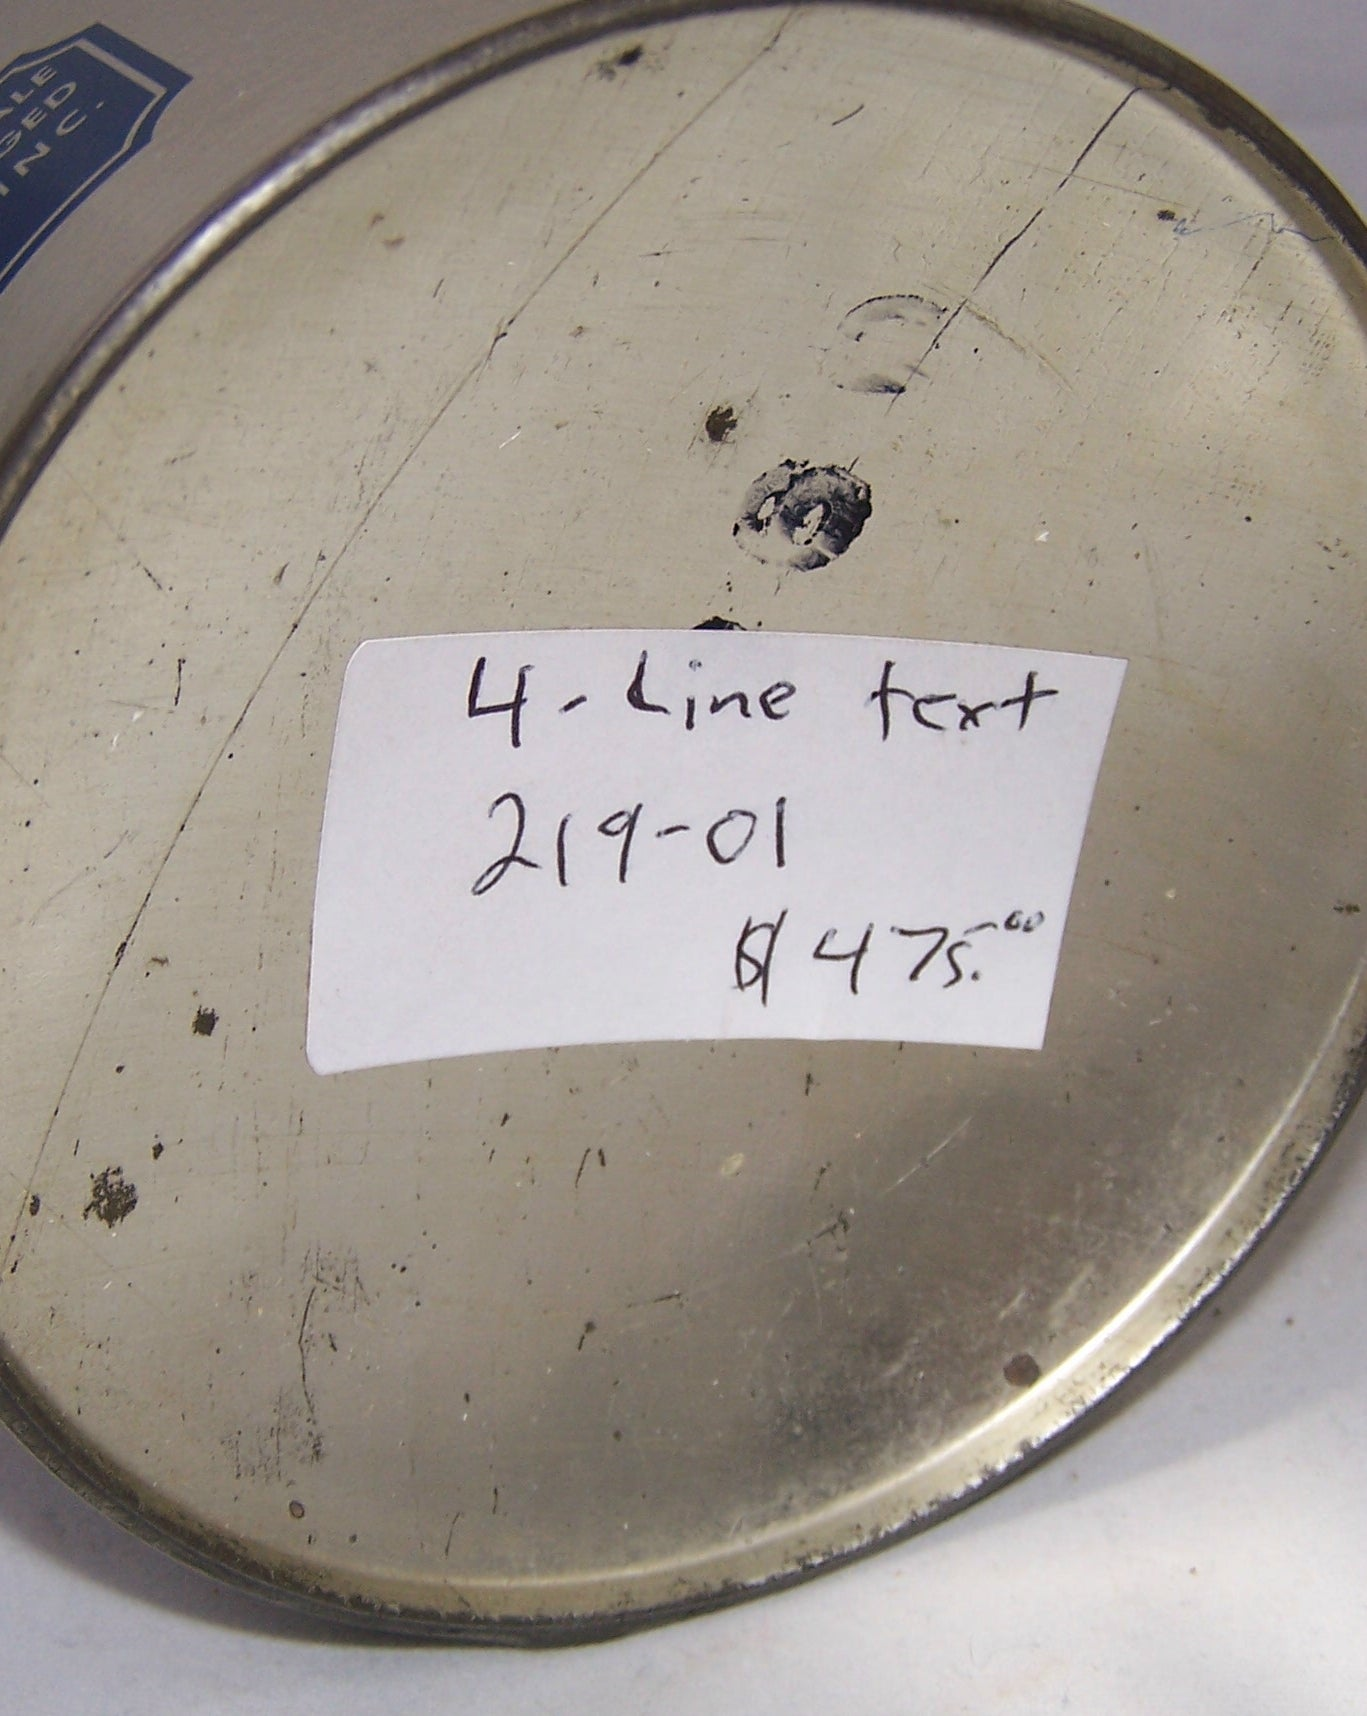 Schmidt's Tiger Cream Ale (4 Lines of Text) USBC 219-01, Grade 1/1+ Sold on 10/22/17